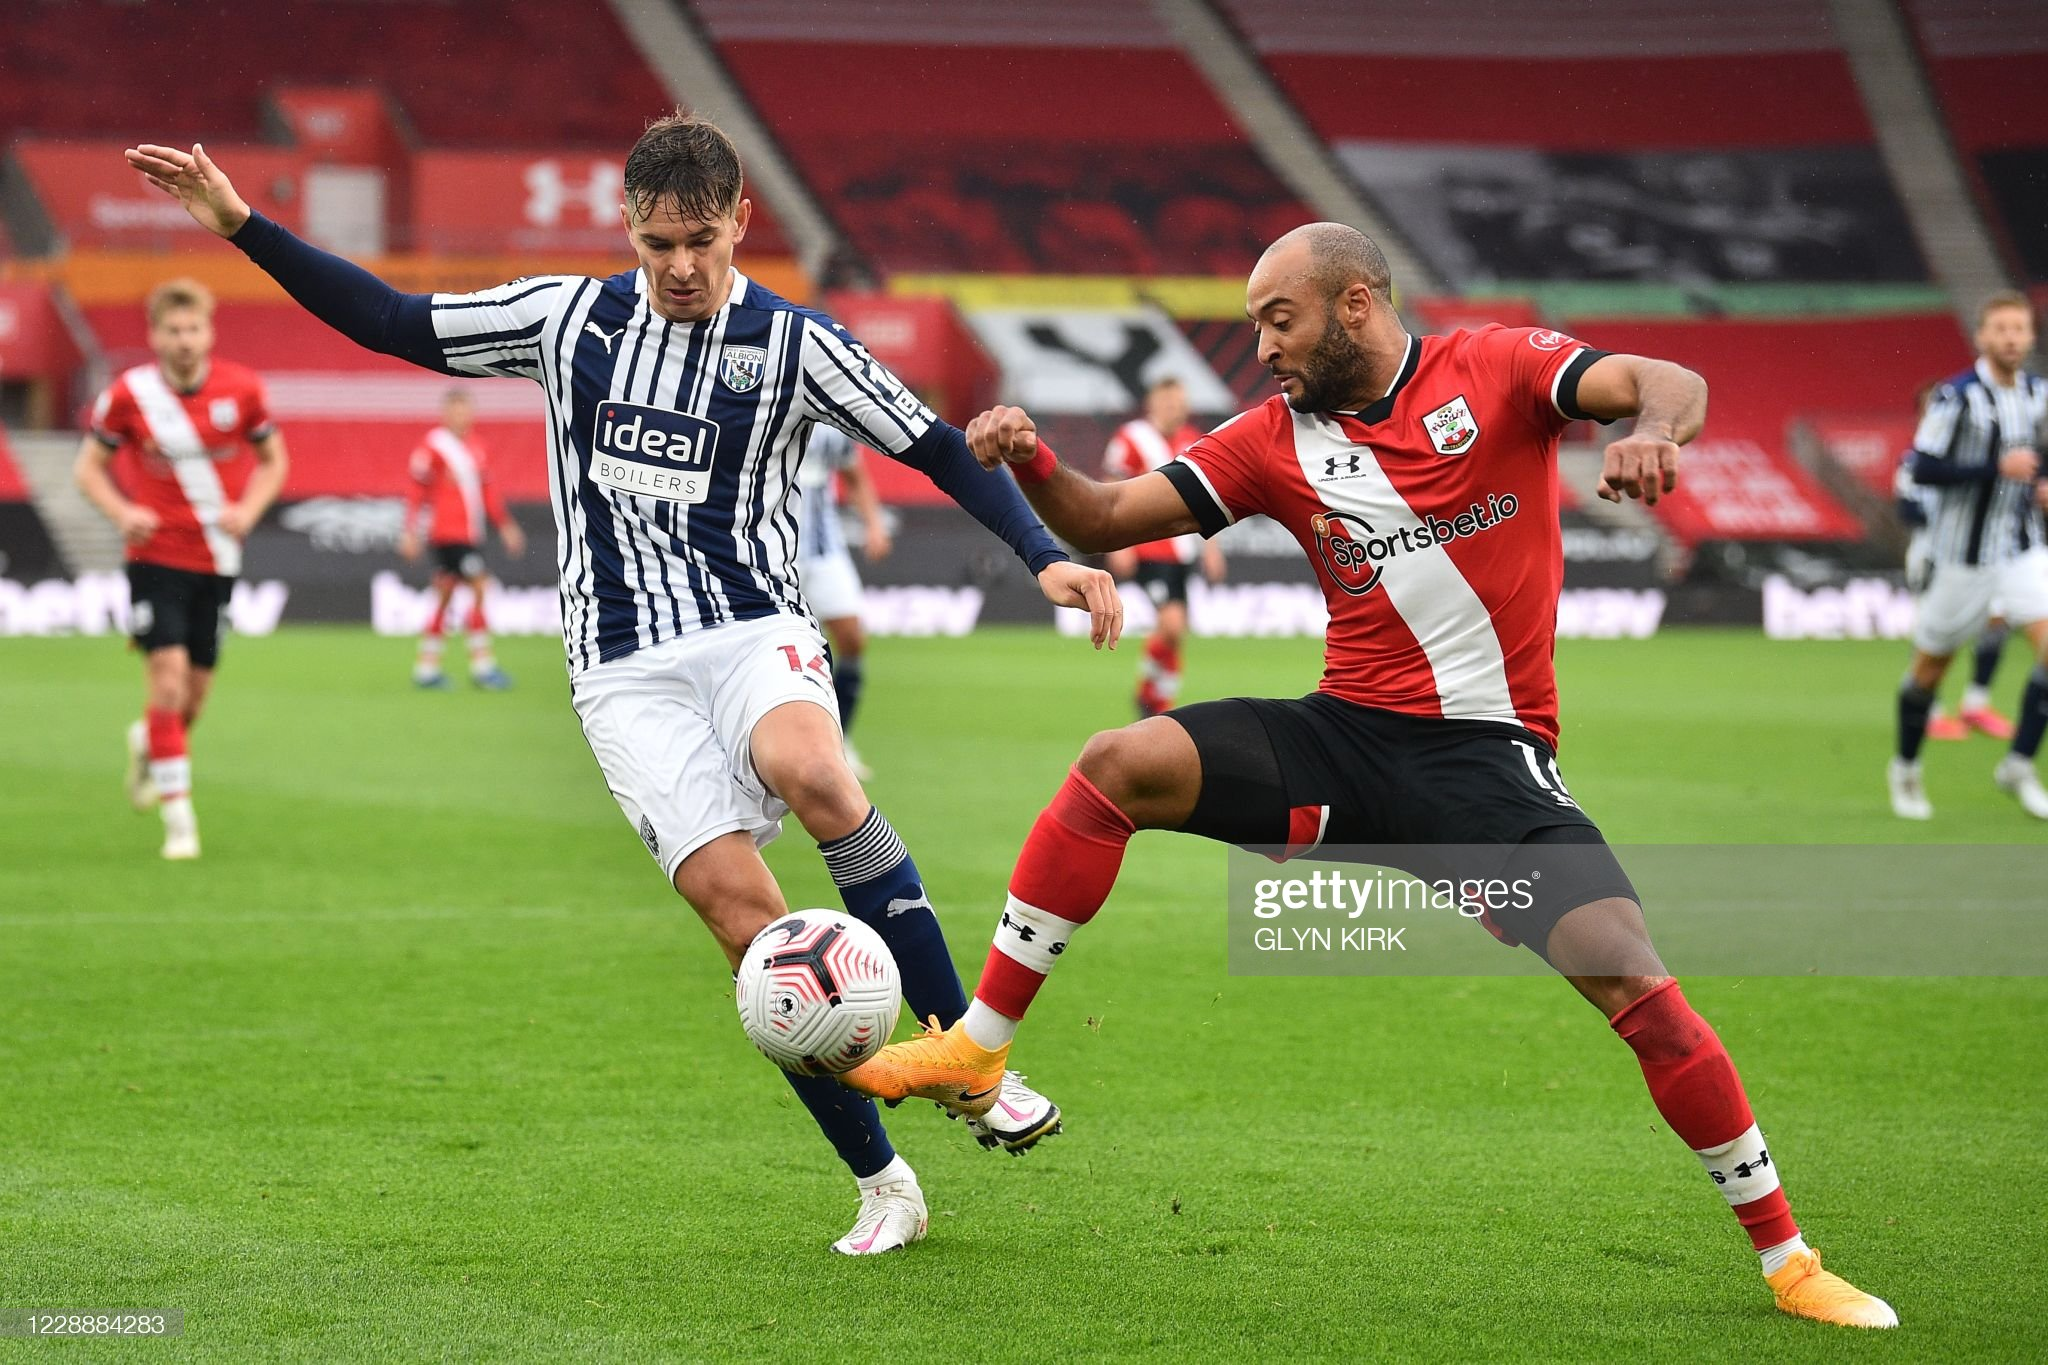 West Brom vs Southampton preview, prediction and odds